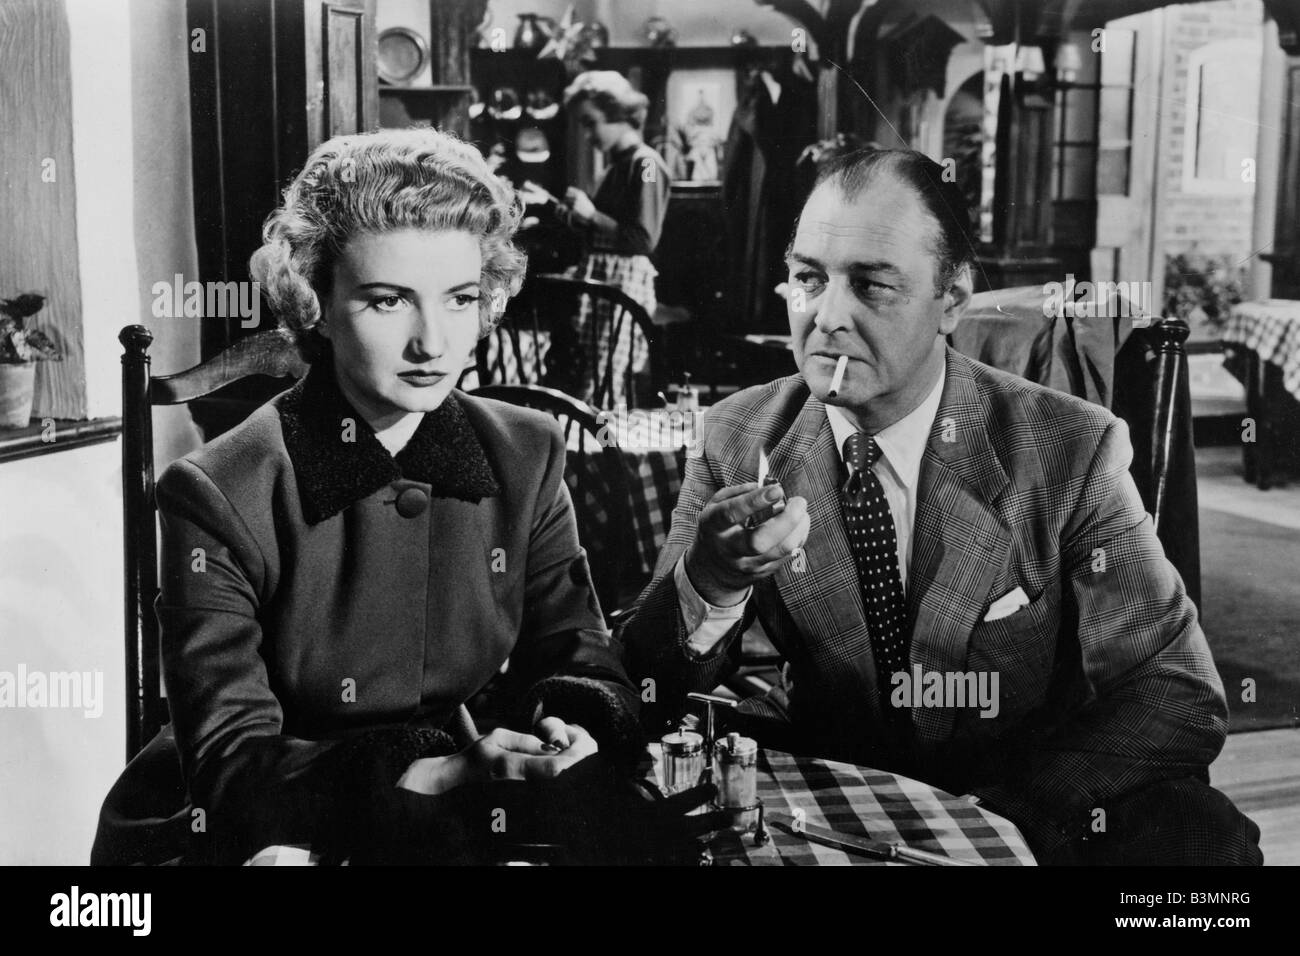 THE EMBEZZLER 1954 Kenilworth film with Zena Marshall and Charles Victor - Stock Image